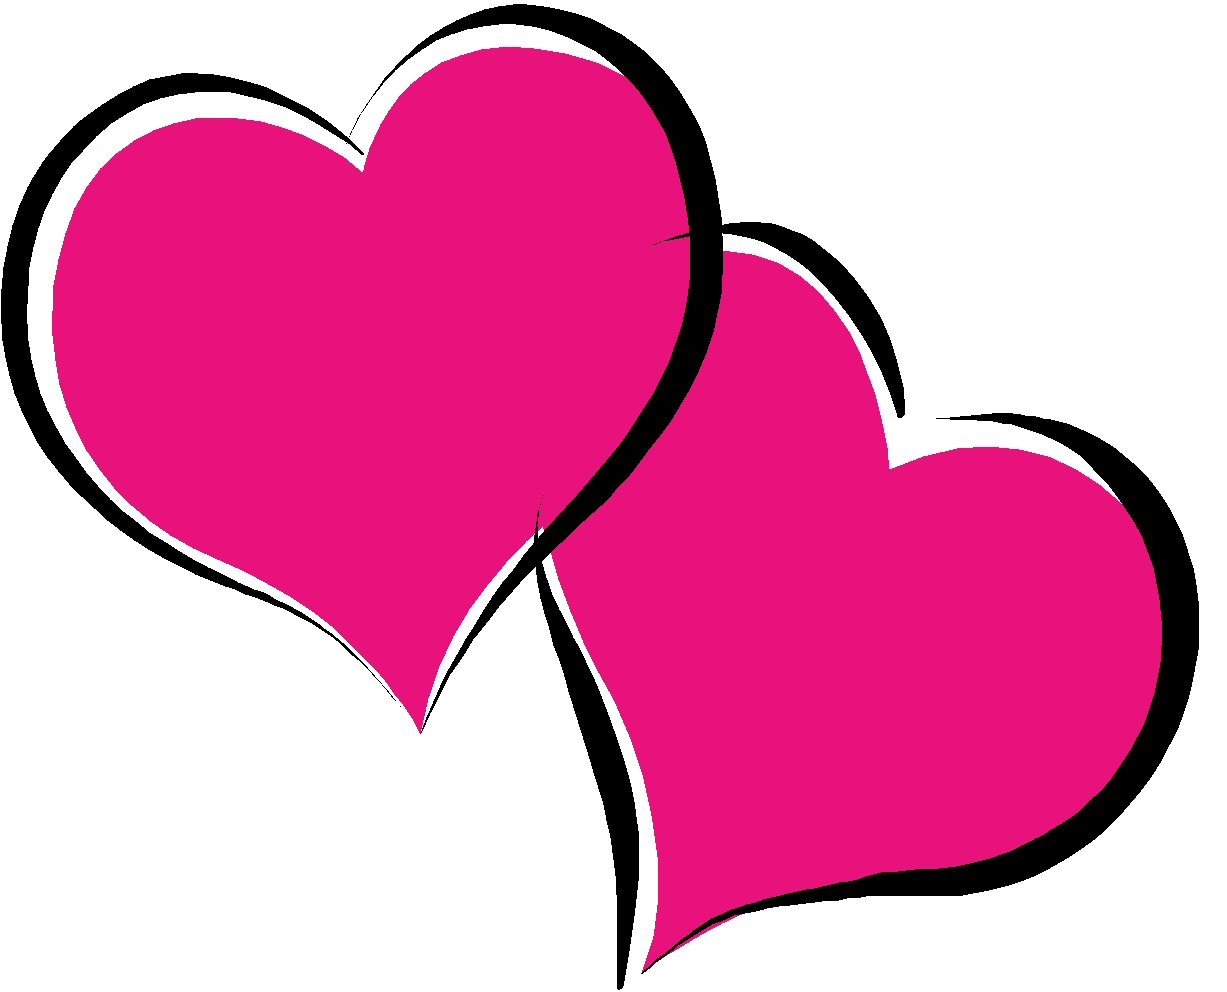 Pink love heart clipart - ClipartFest